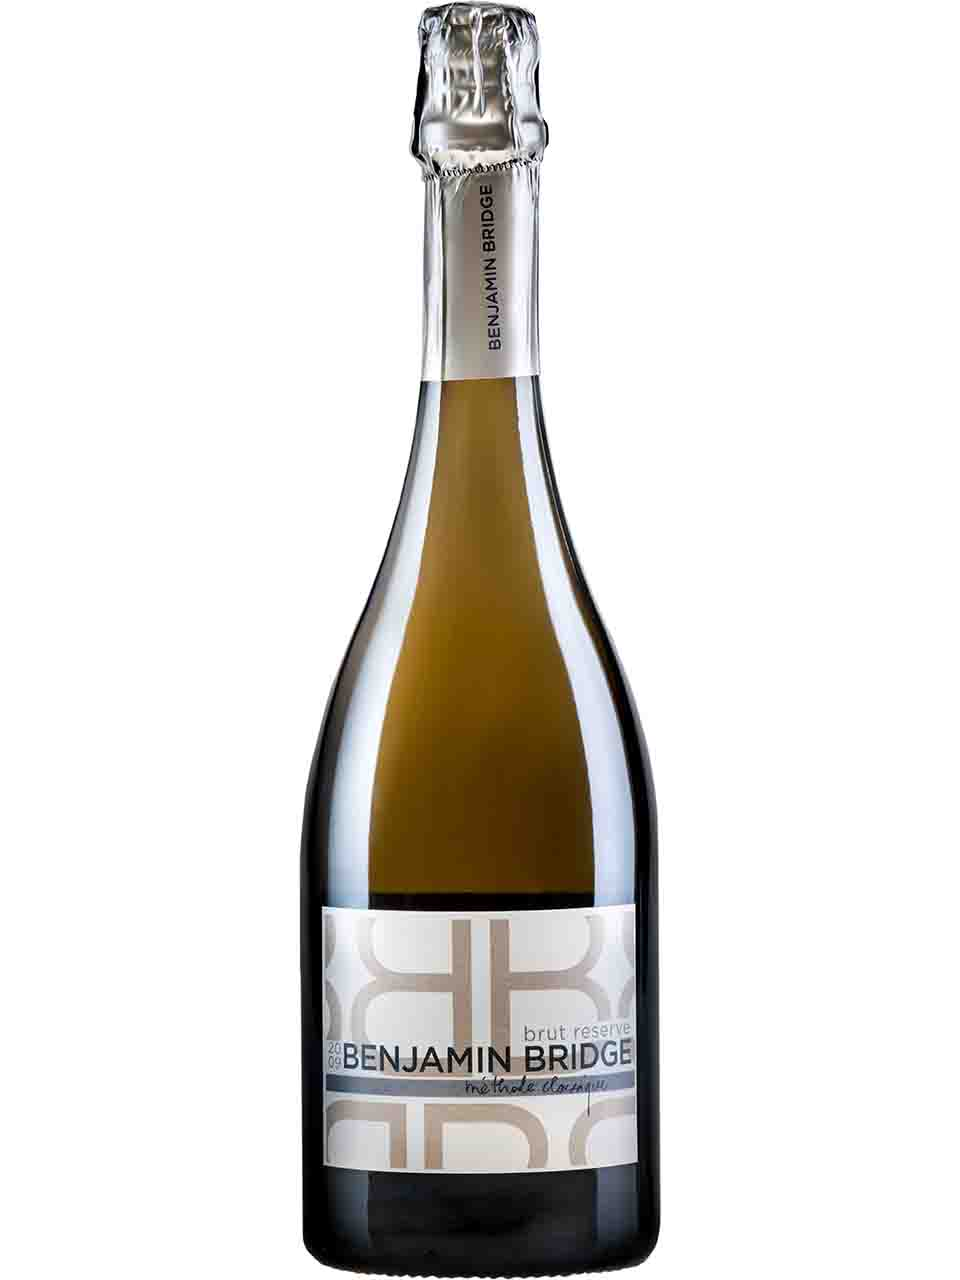 Benjamin Bridge Brut Reserve Classique Methode